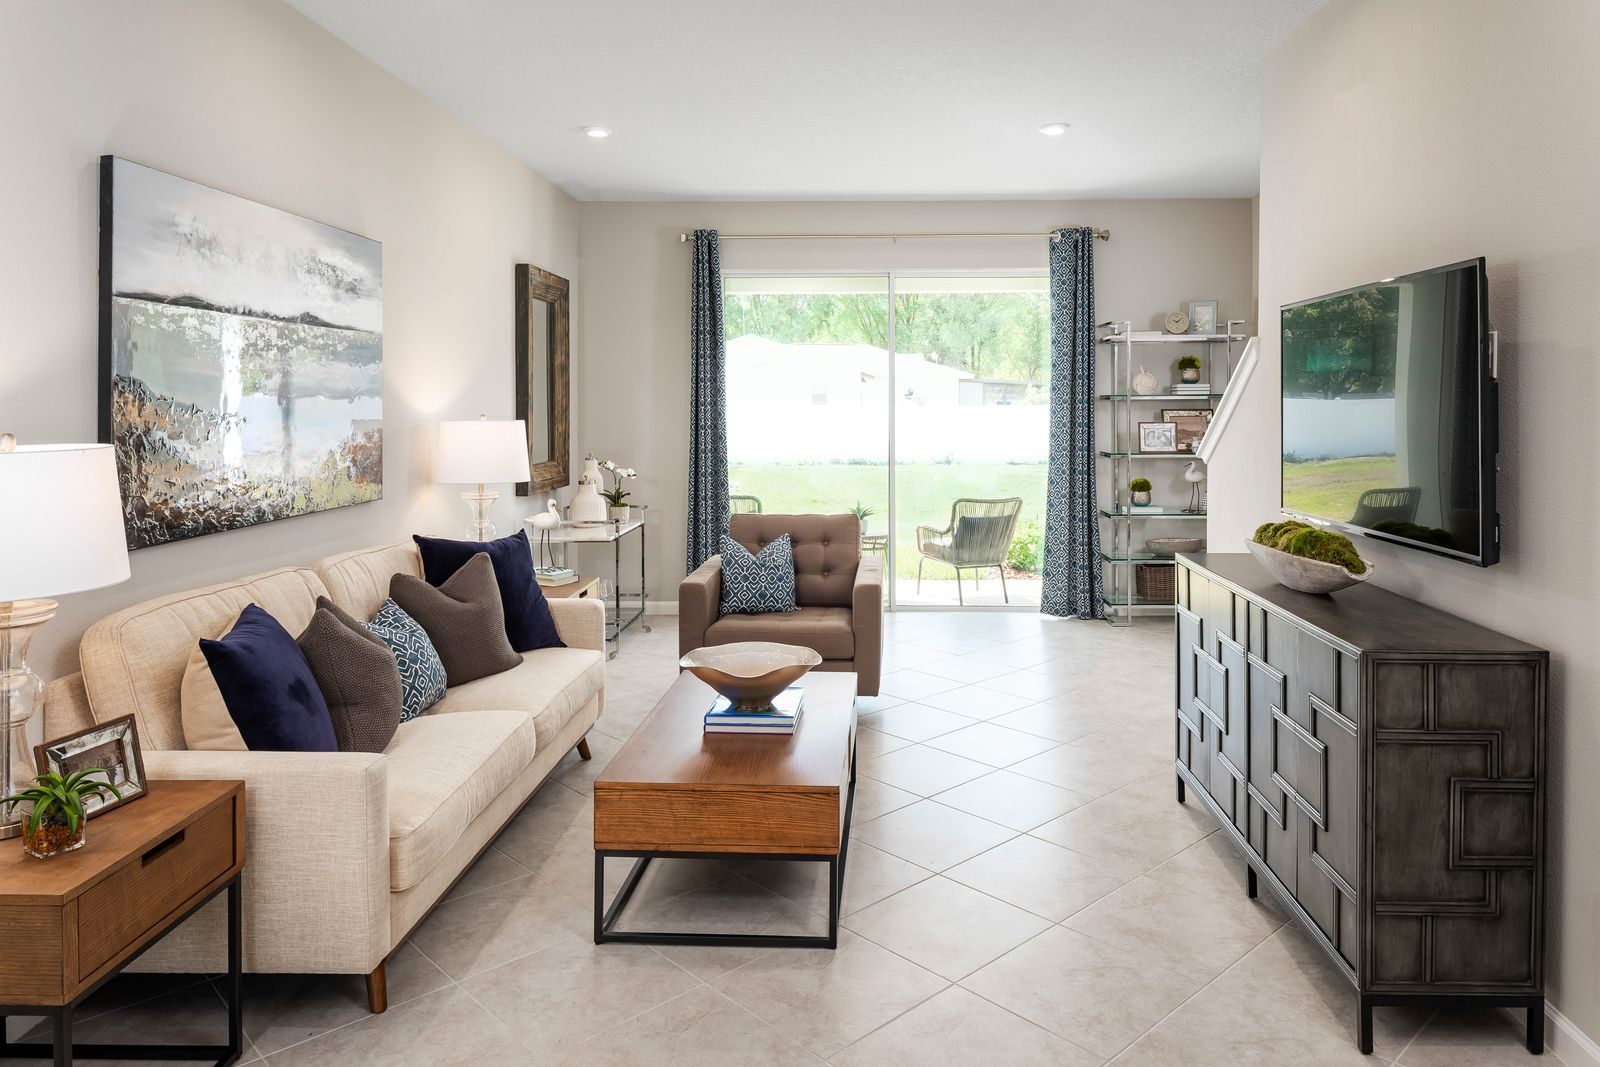 Living Area featured in the Pelican-Estuary By Ryan Homes in Tampa-St. Petersburg, FL